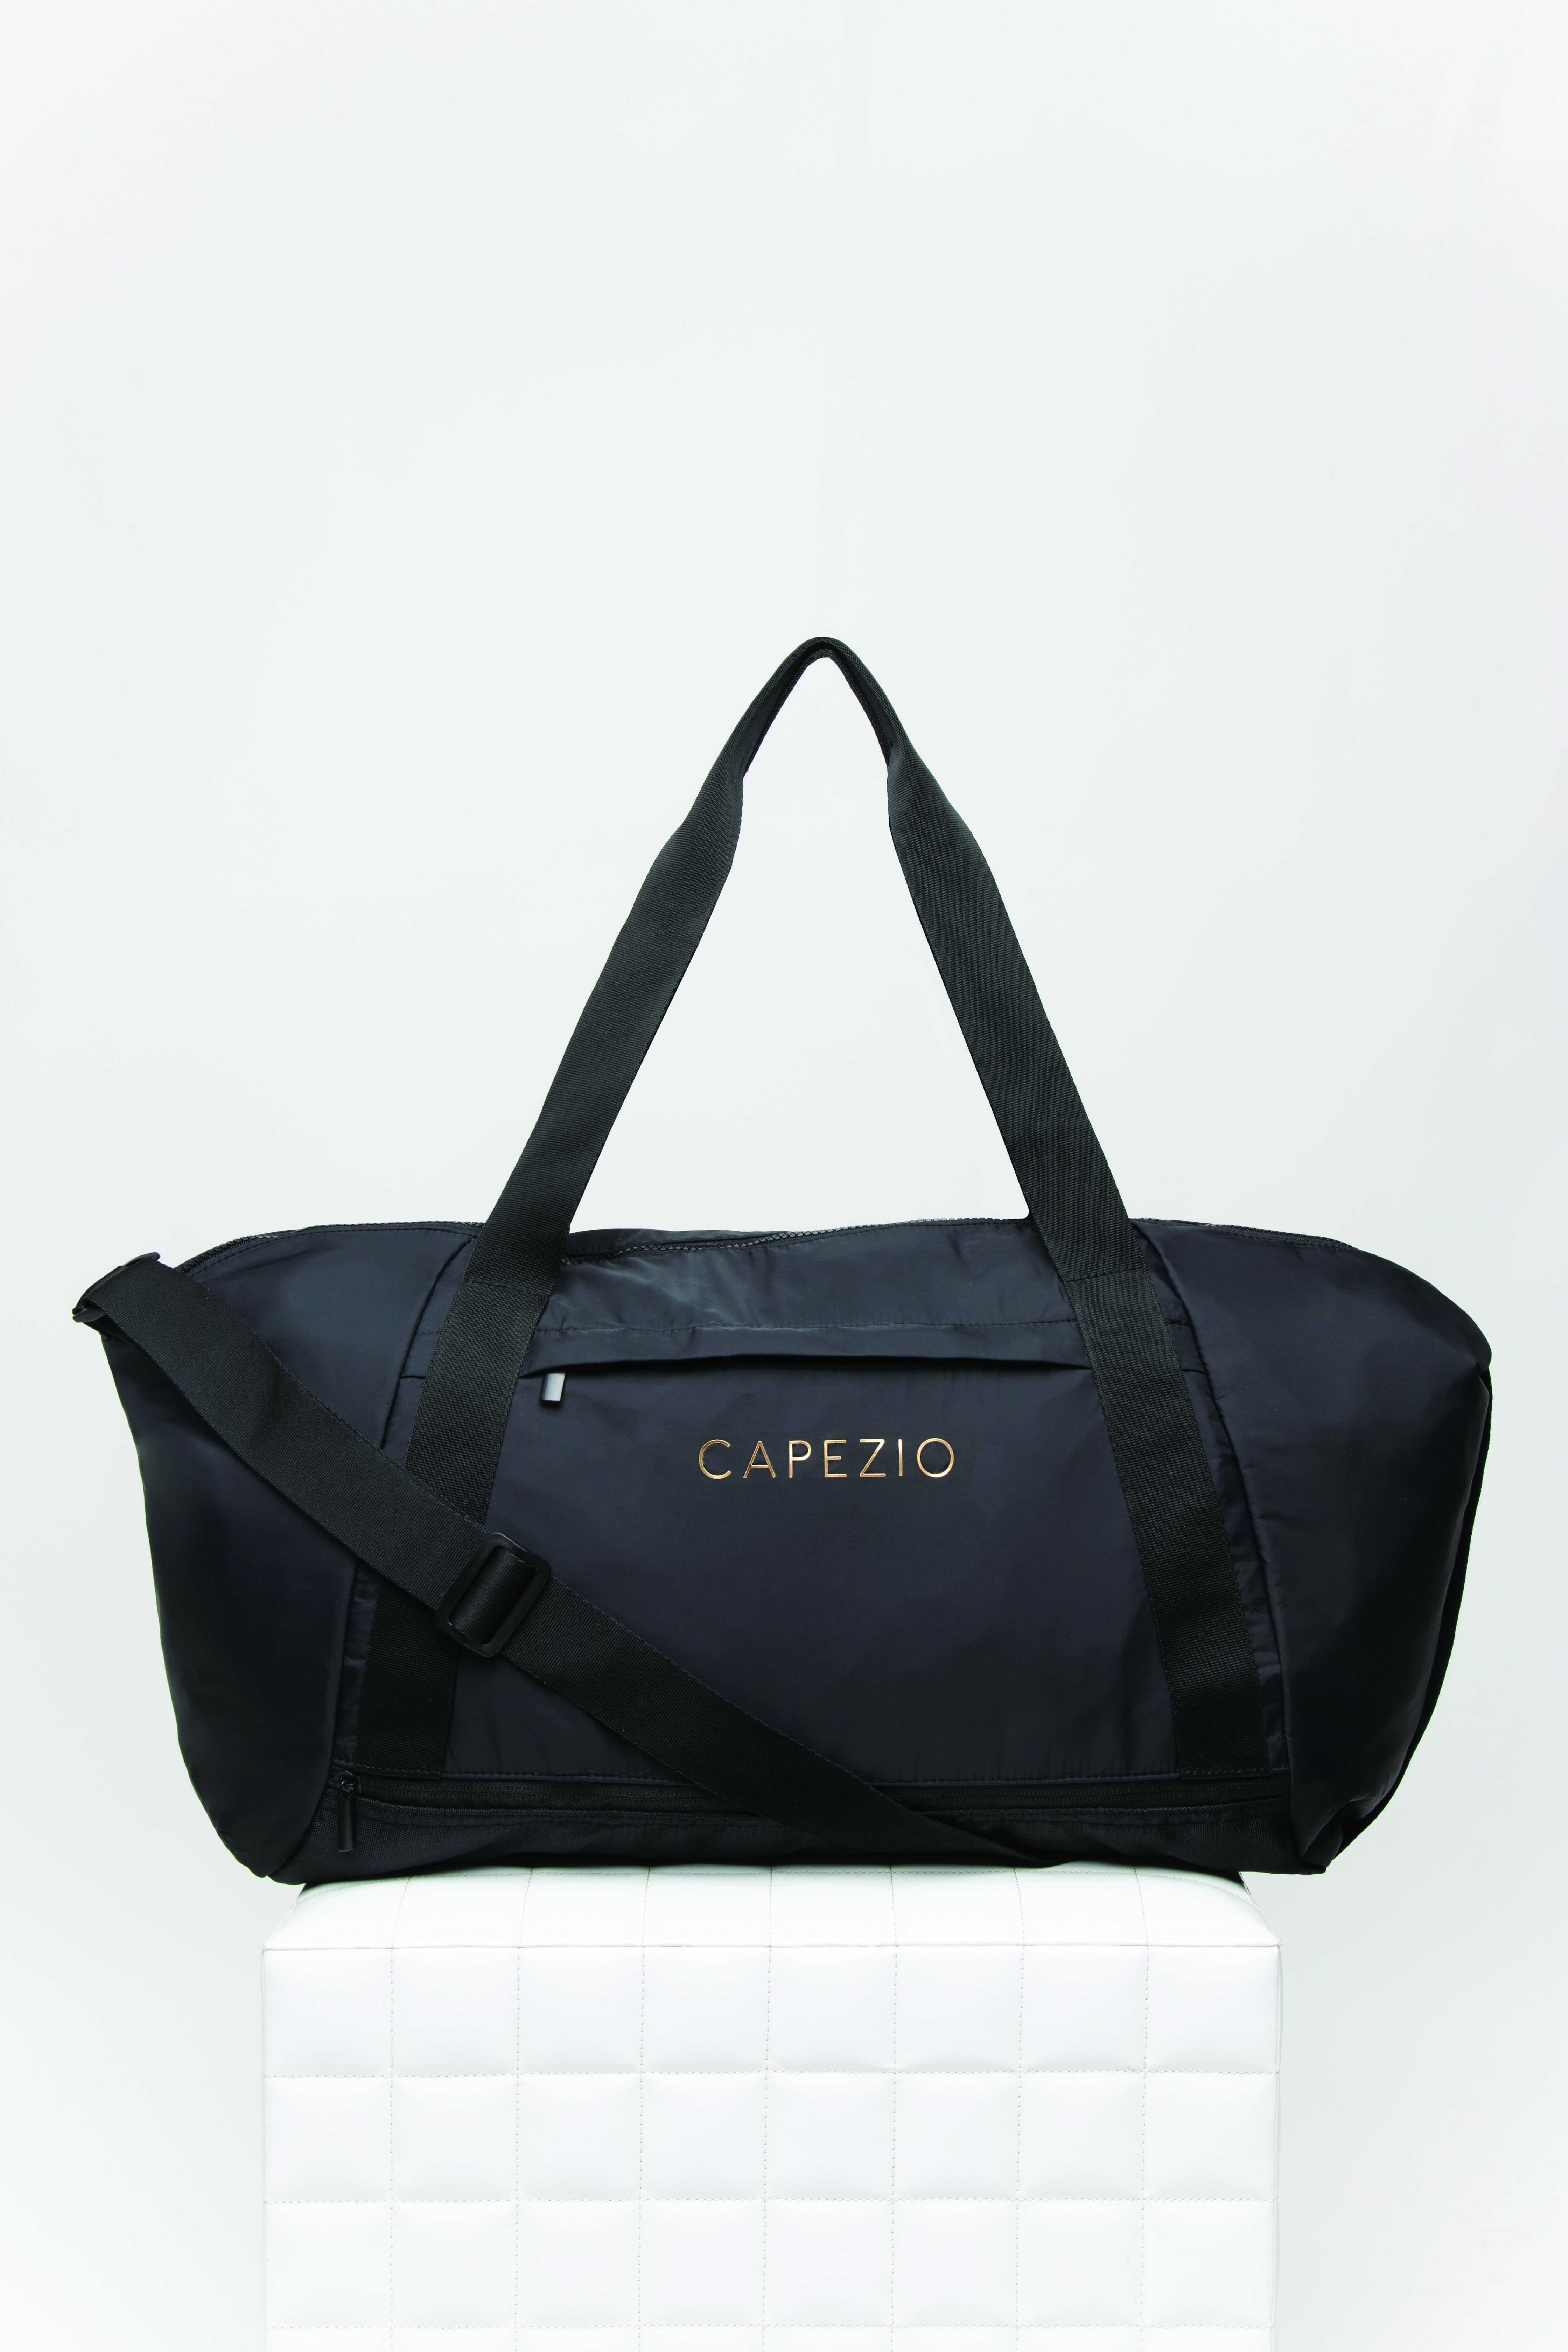 Nuova shopping bag Capezio